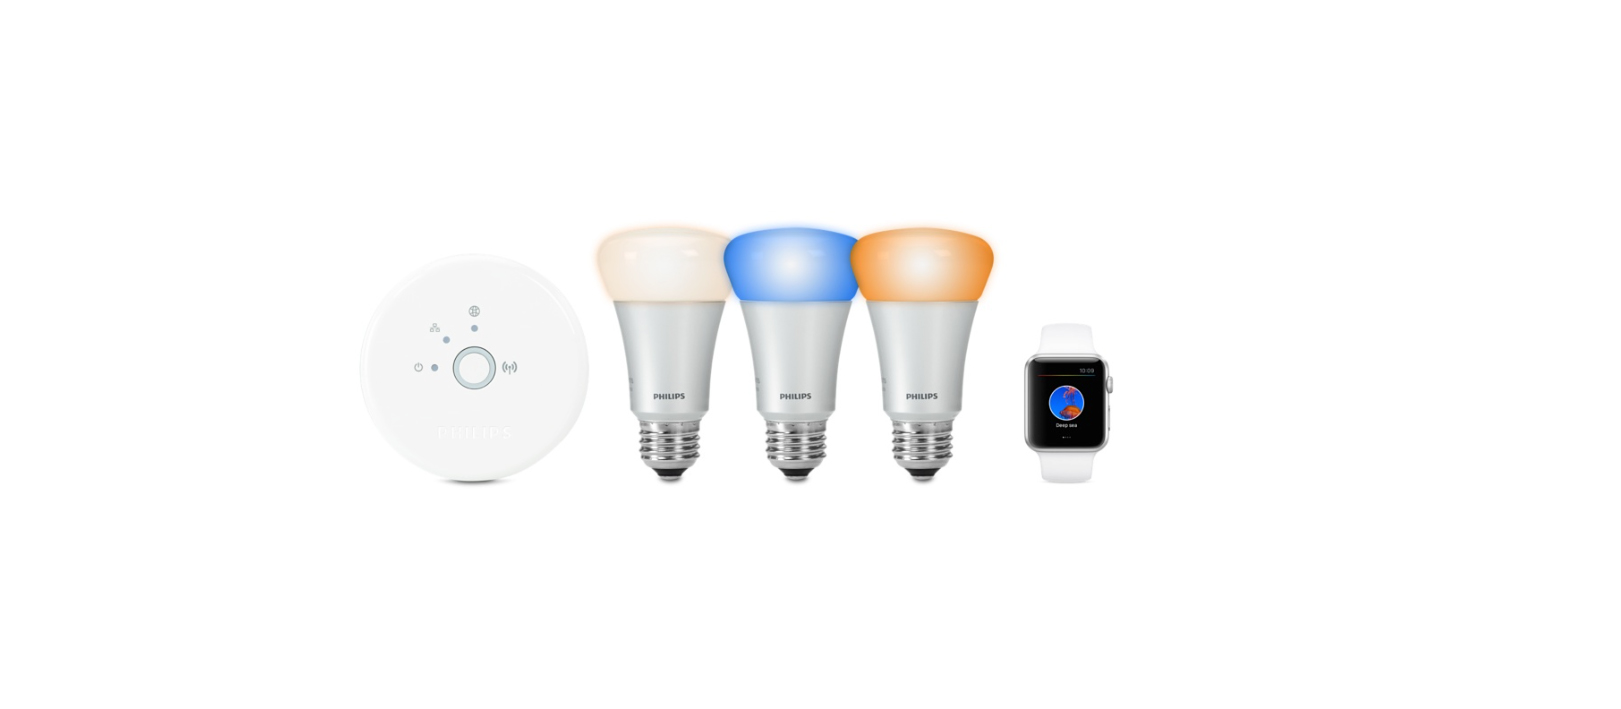 Philips Hue Bridge Homekit Apple Homekit Support Will Reportedly Arrive For The Philips Hue